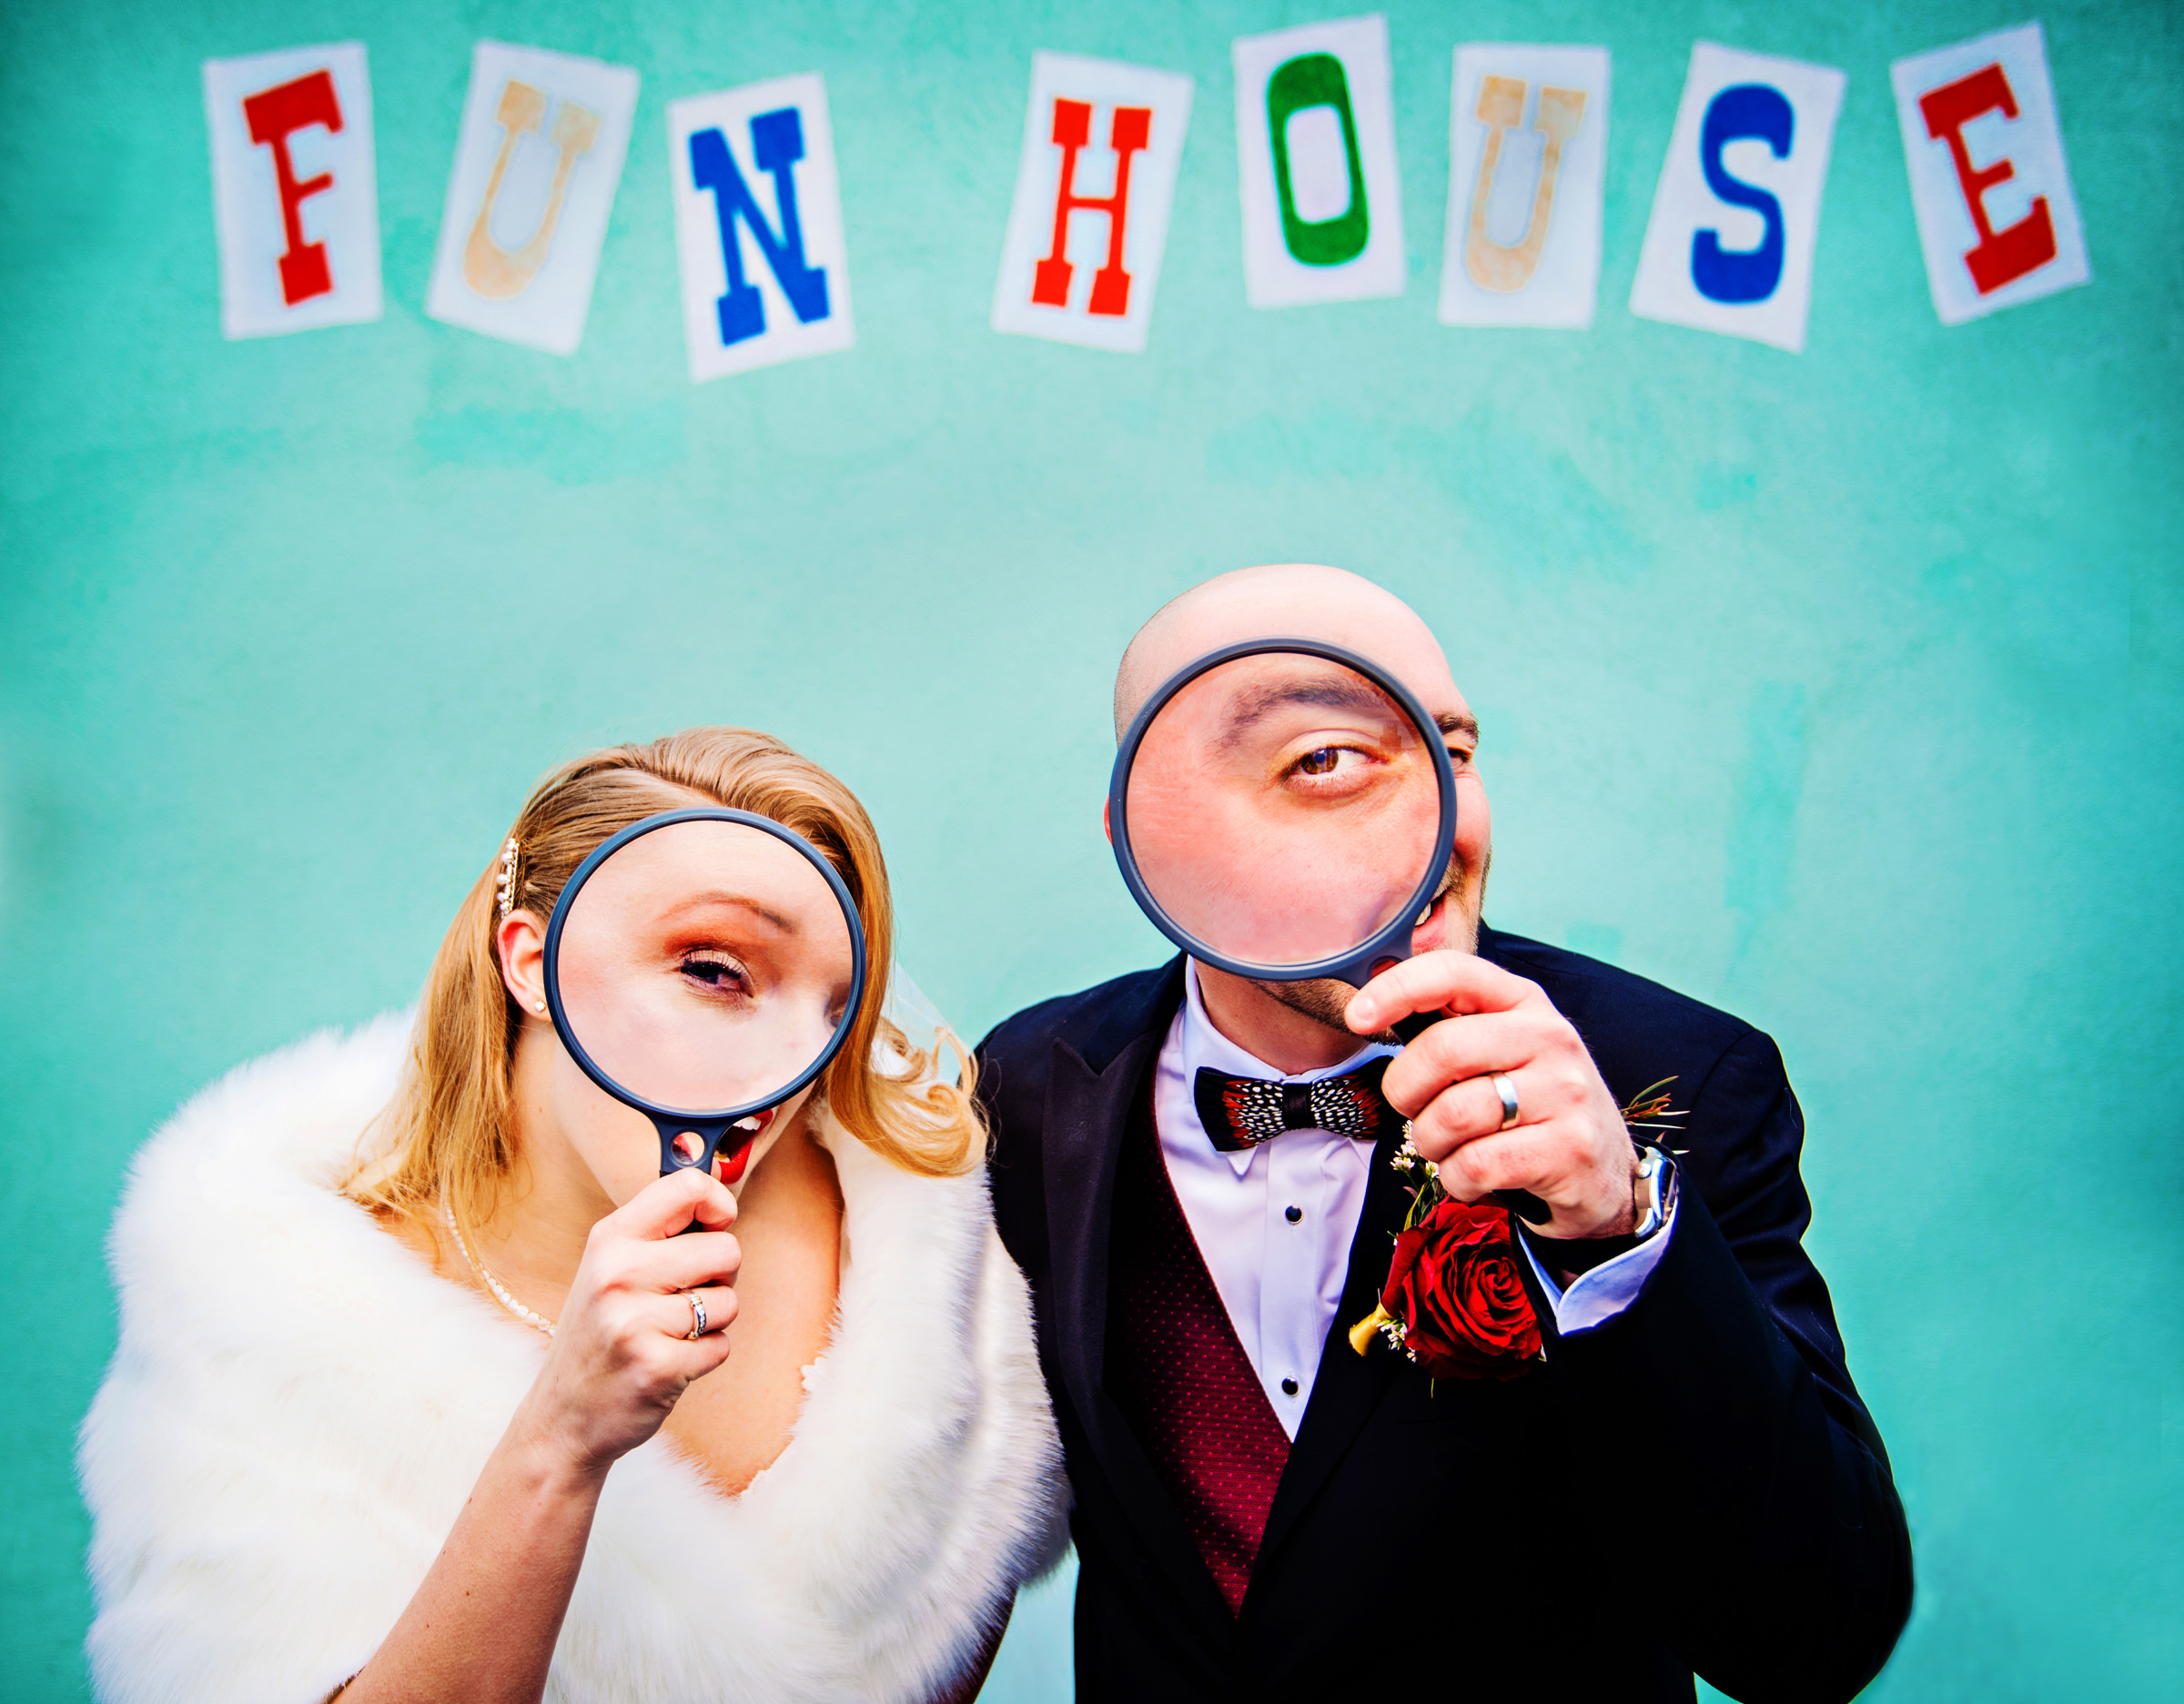 bride-and-groom-look-through-magnifying-glasses-under-fun-house-sign-jeff-tisman-photography-new-york